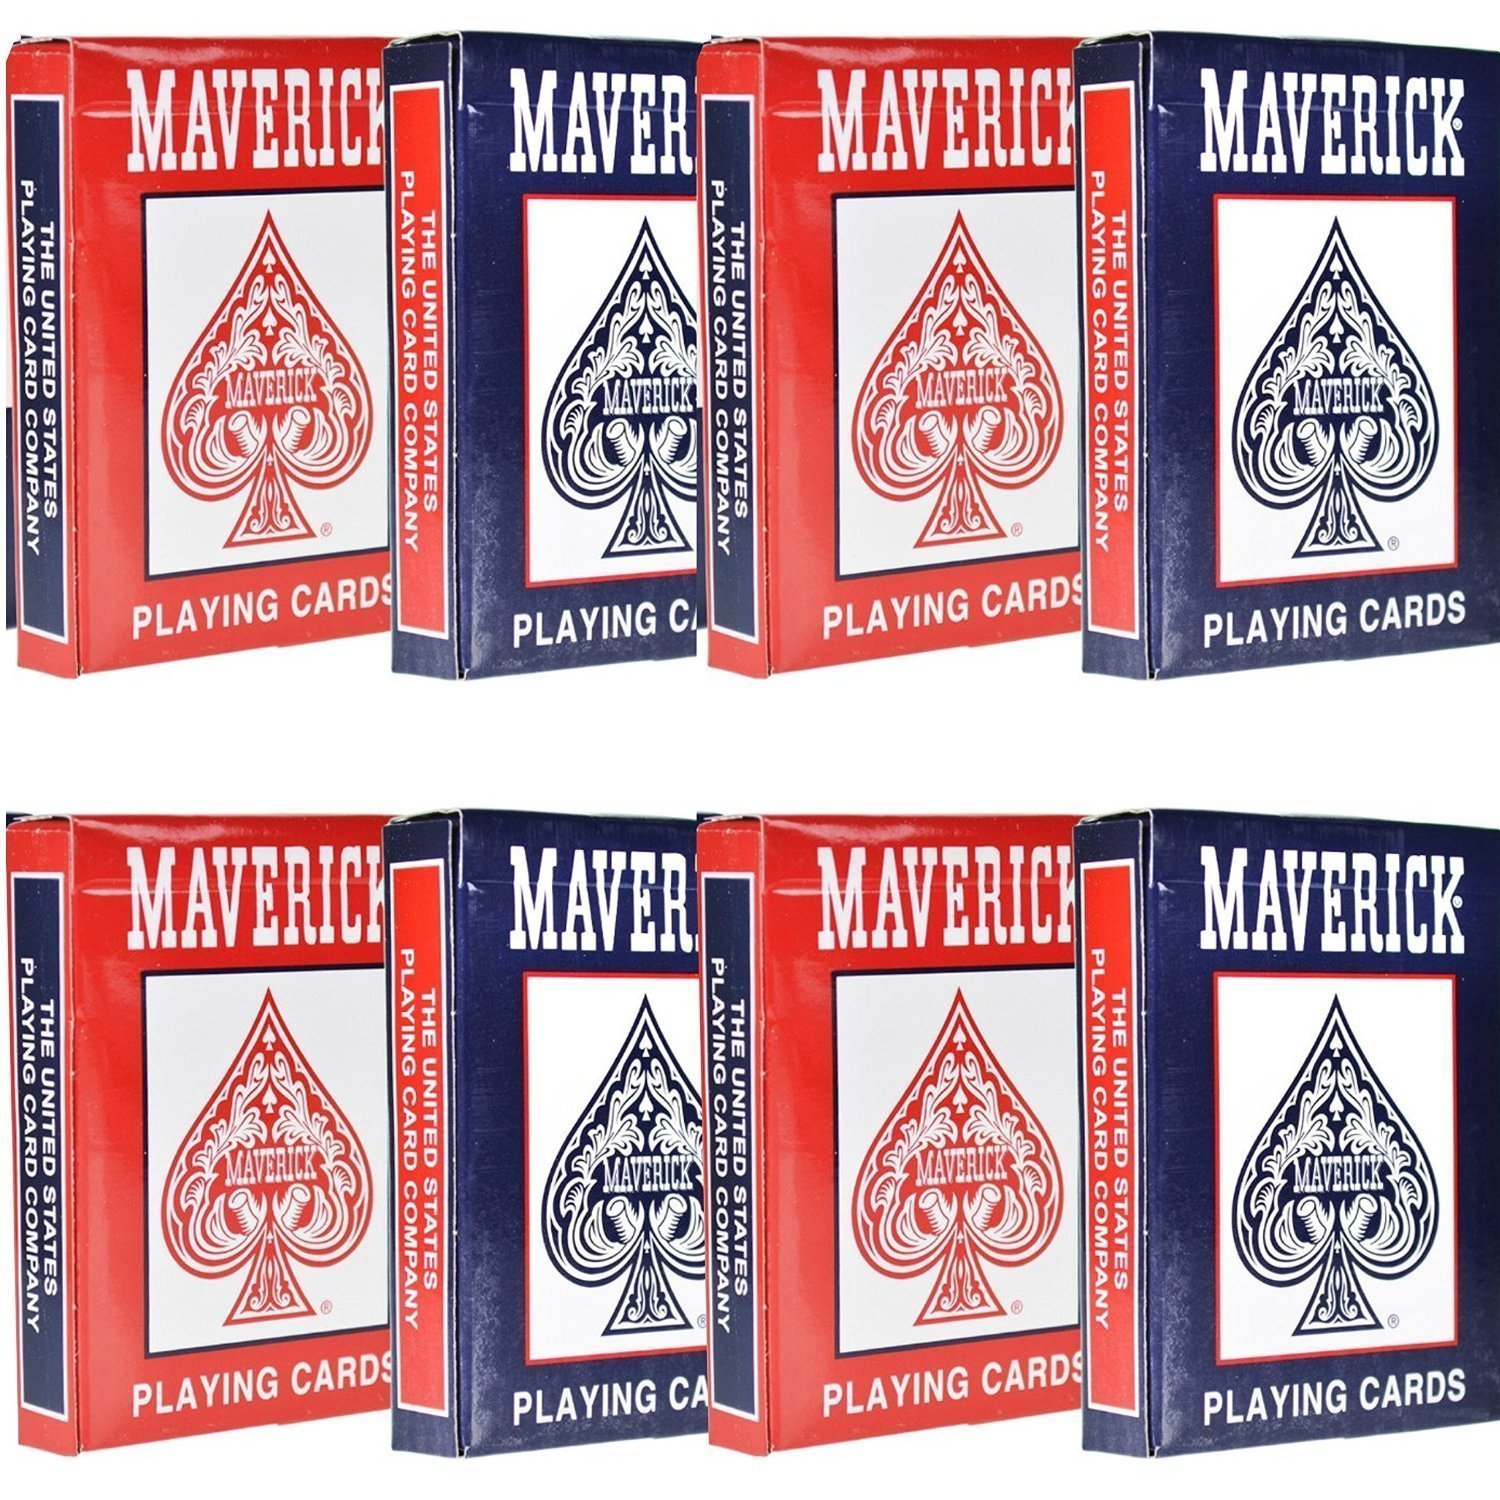 8 Decks of Playing Cards Colors May Vary by